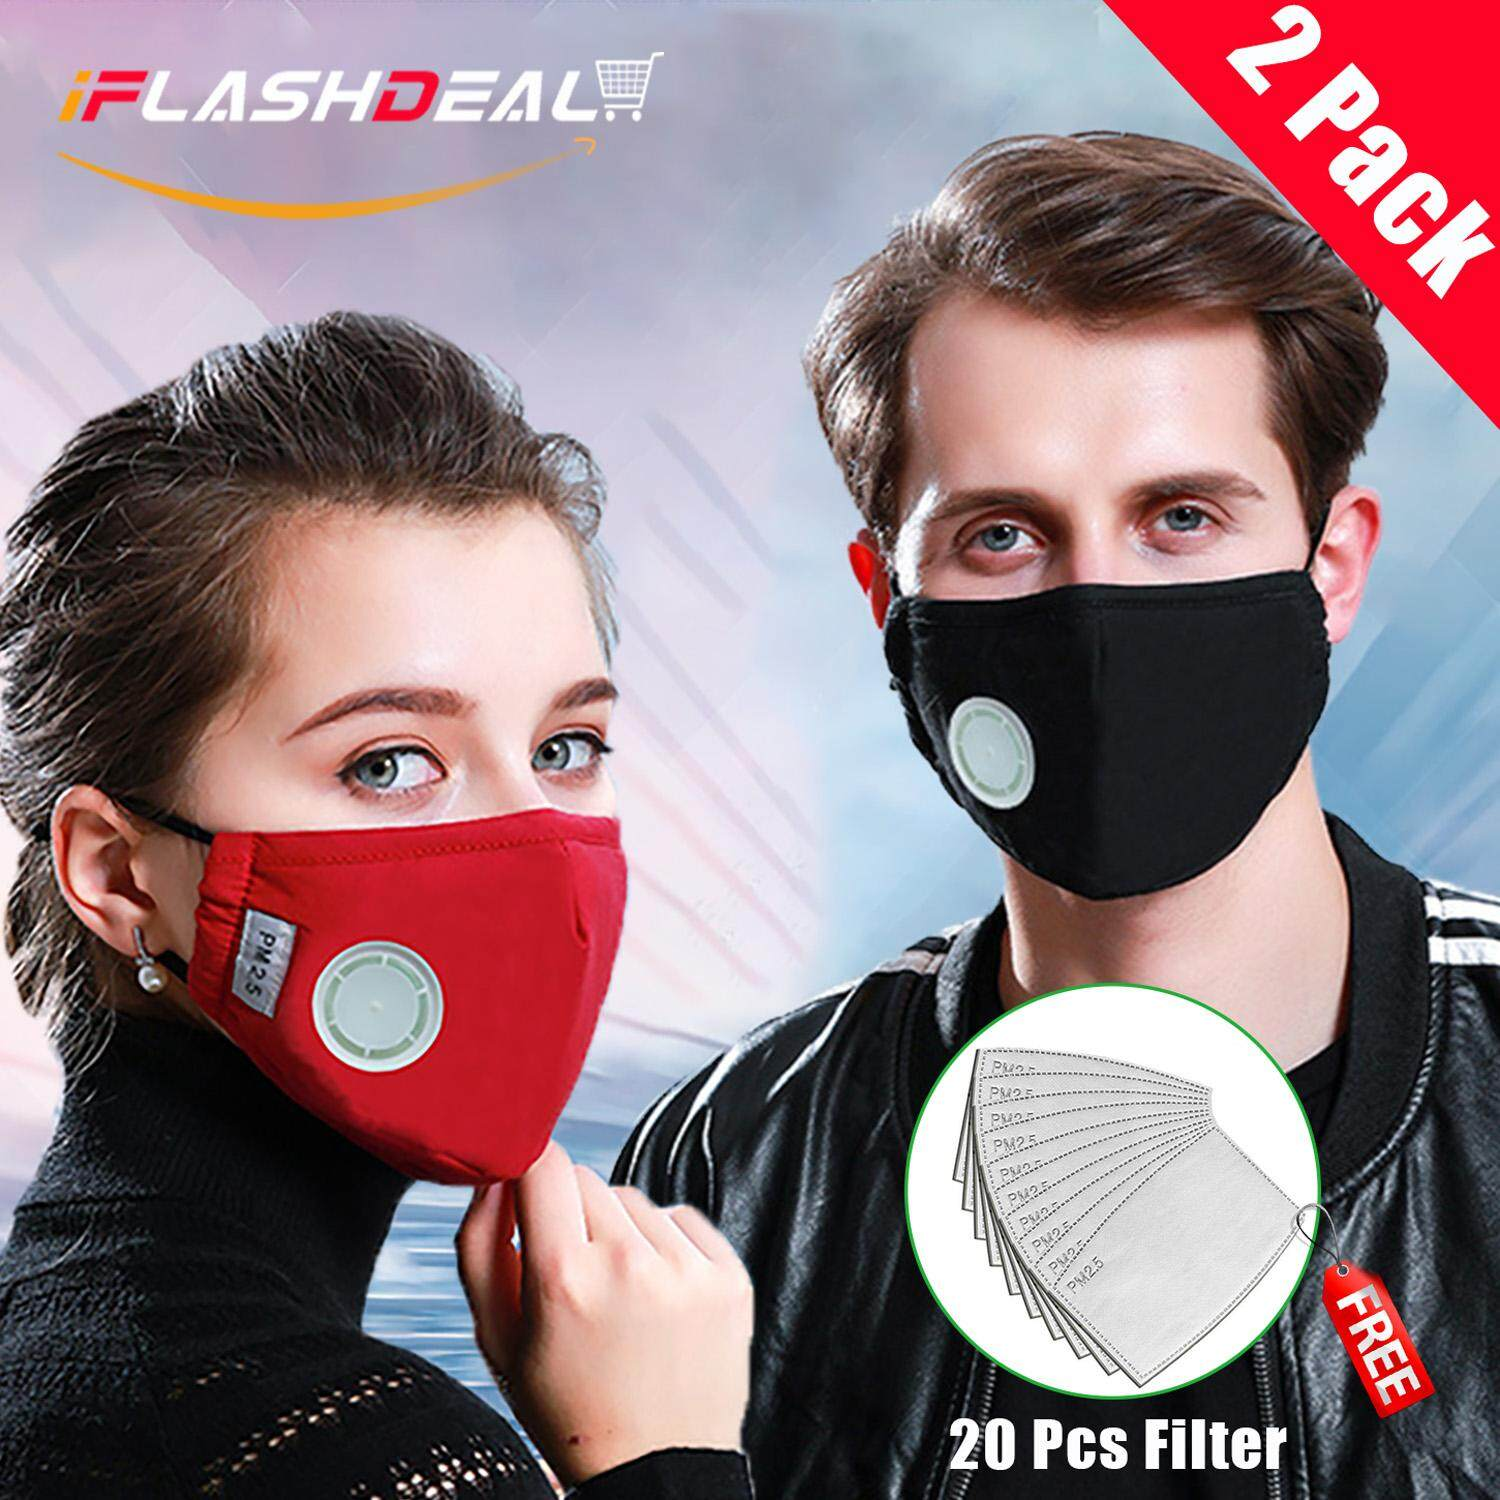 New Black Anti Dust Respirator Mask Anti-pm2.5 Filter Activated Carbon Filtration Half Face Mask Reusable Anti-haze Mouth Masks Tool Parts